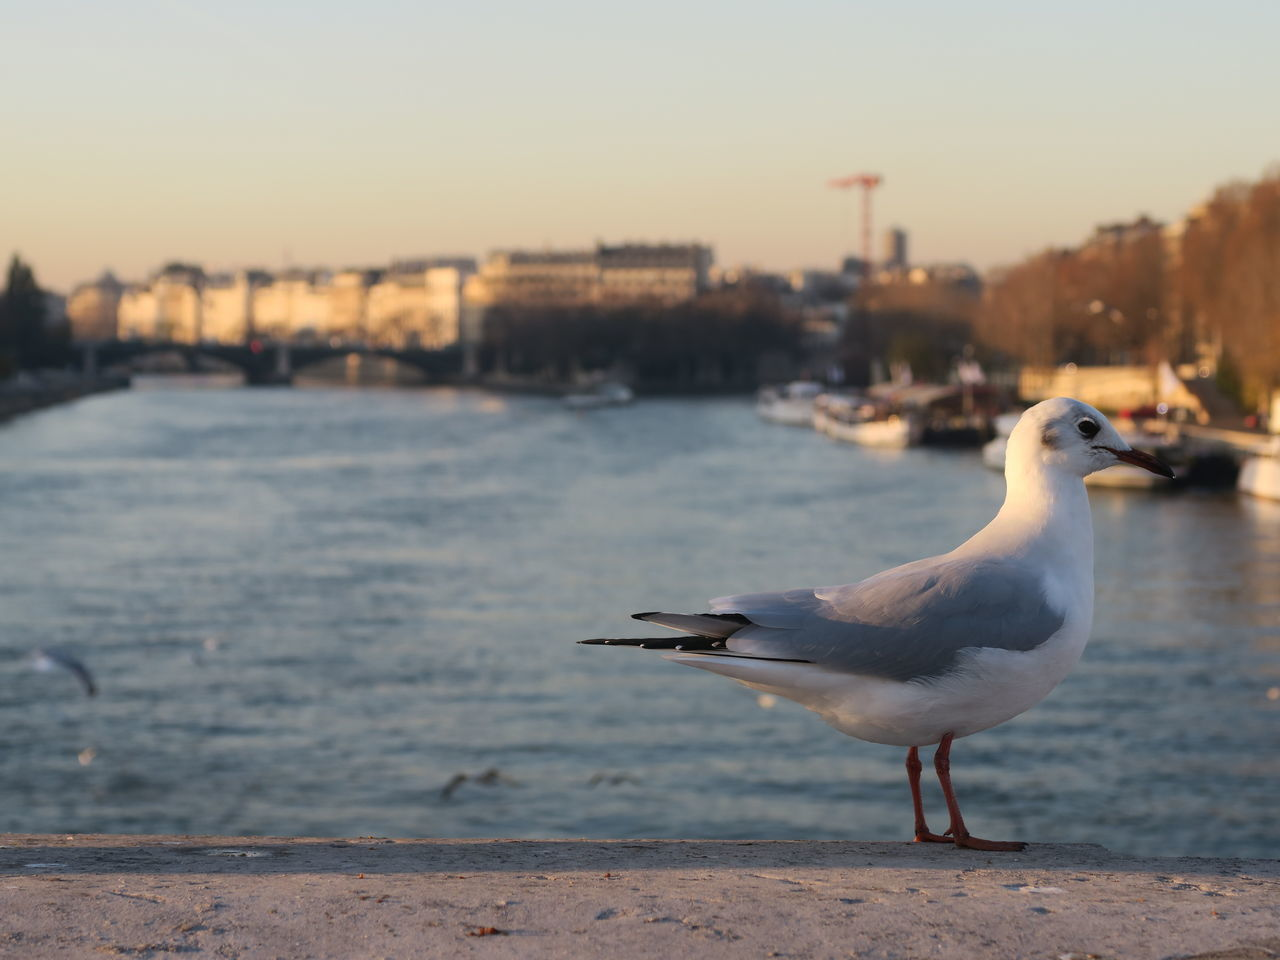 Gull, spotted at a Paris' scene Animal Themes Animal Wildlife Animals In The Wild Bird Bird Photography Birds Birds_collection Black-headed Gull Bridge Charles De Gaulle Down By The River Focus On Foreground Gull Gulls Gulls And Sky Outdoors Paris Paris, France  Perching Sea Bird Seagull Seine Seine River Troublemaker Winterplumage